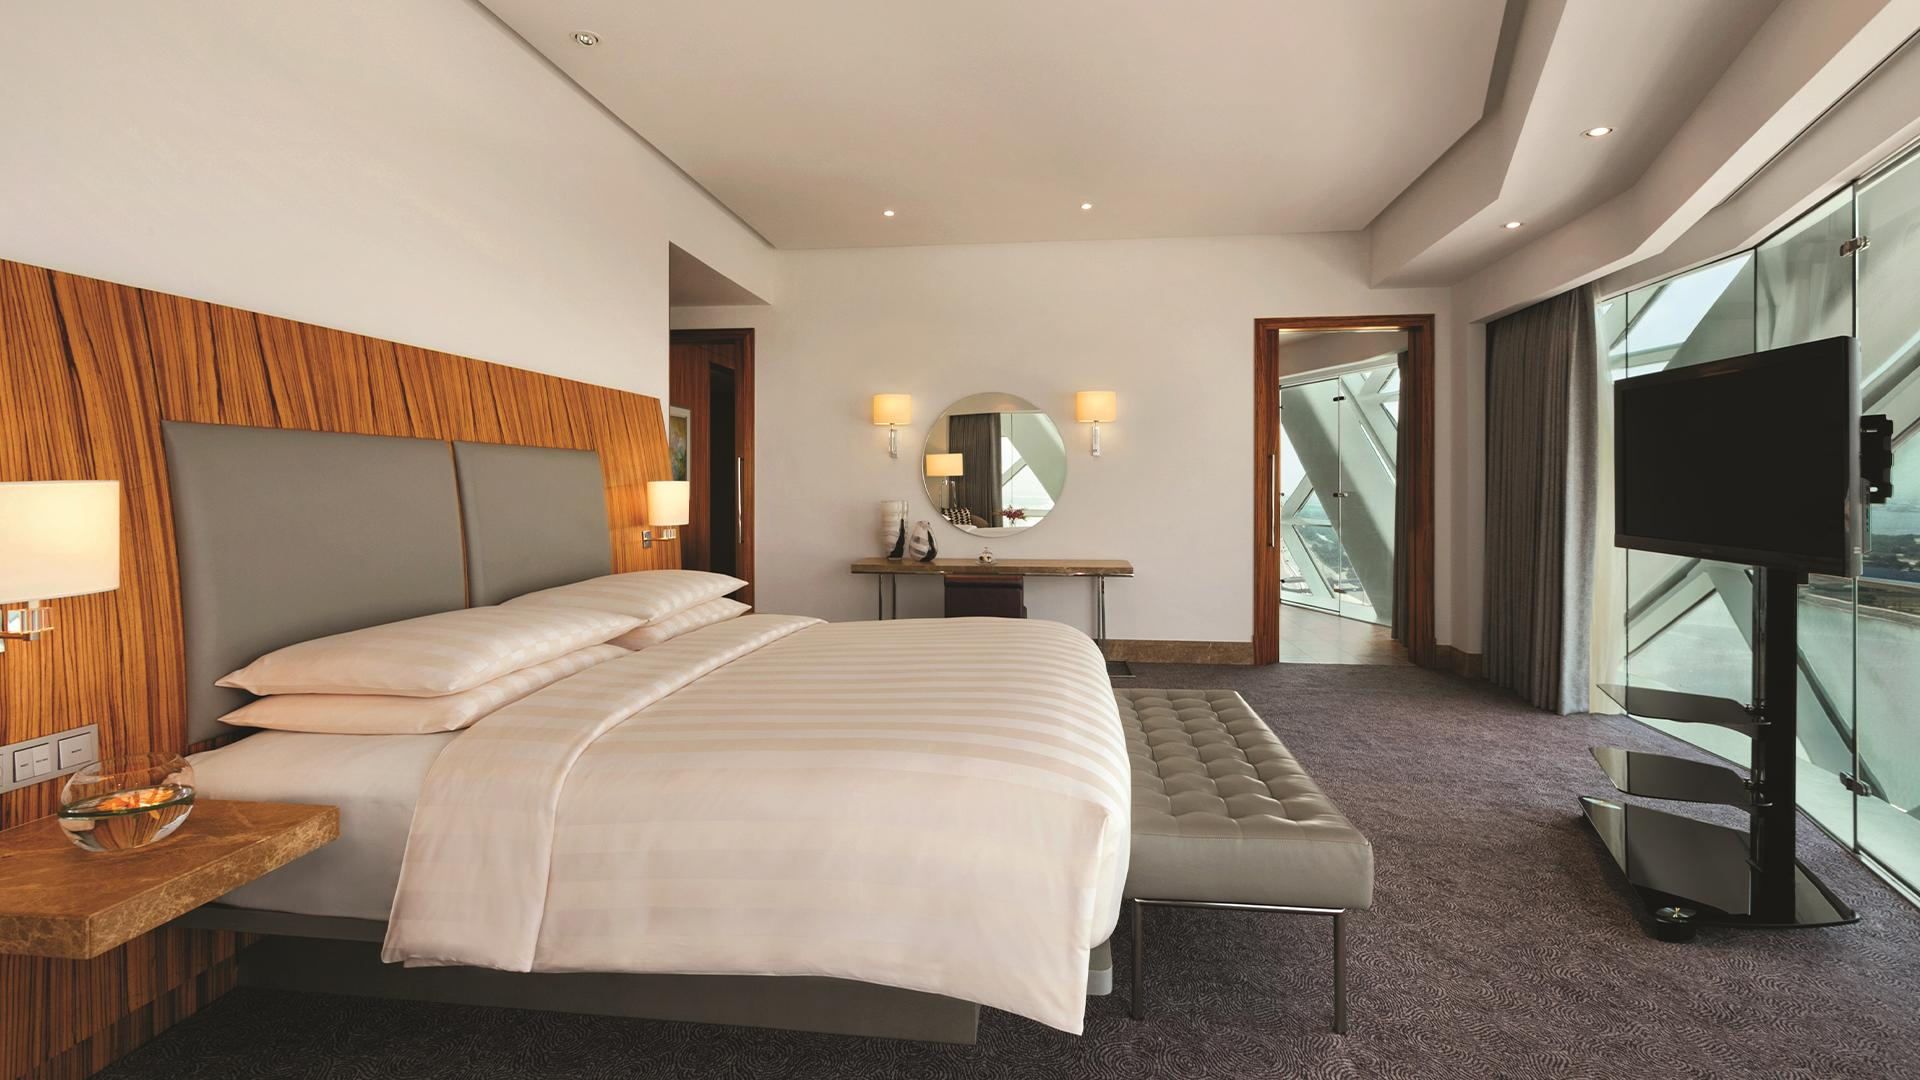 Capital Suite image 1 at Andaz Capital Gate, Abu Dhabi — a concept by Hyatt by null, Abu Dhabi, United Arab Emirates